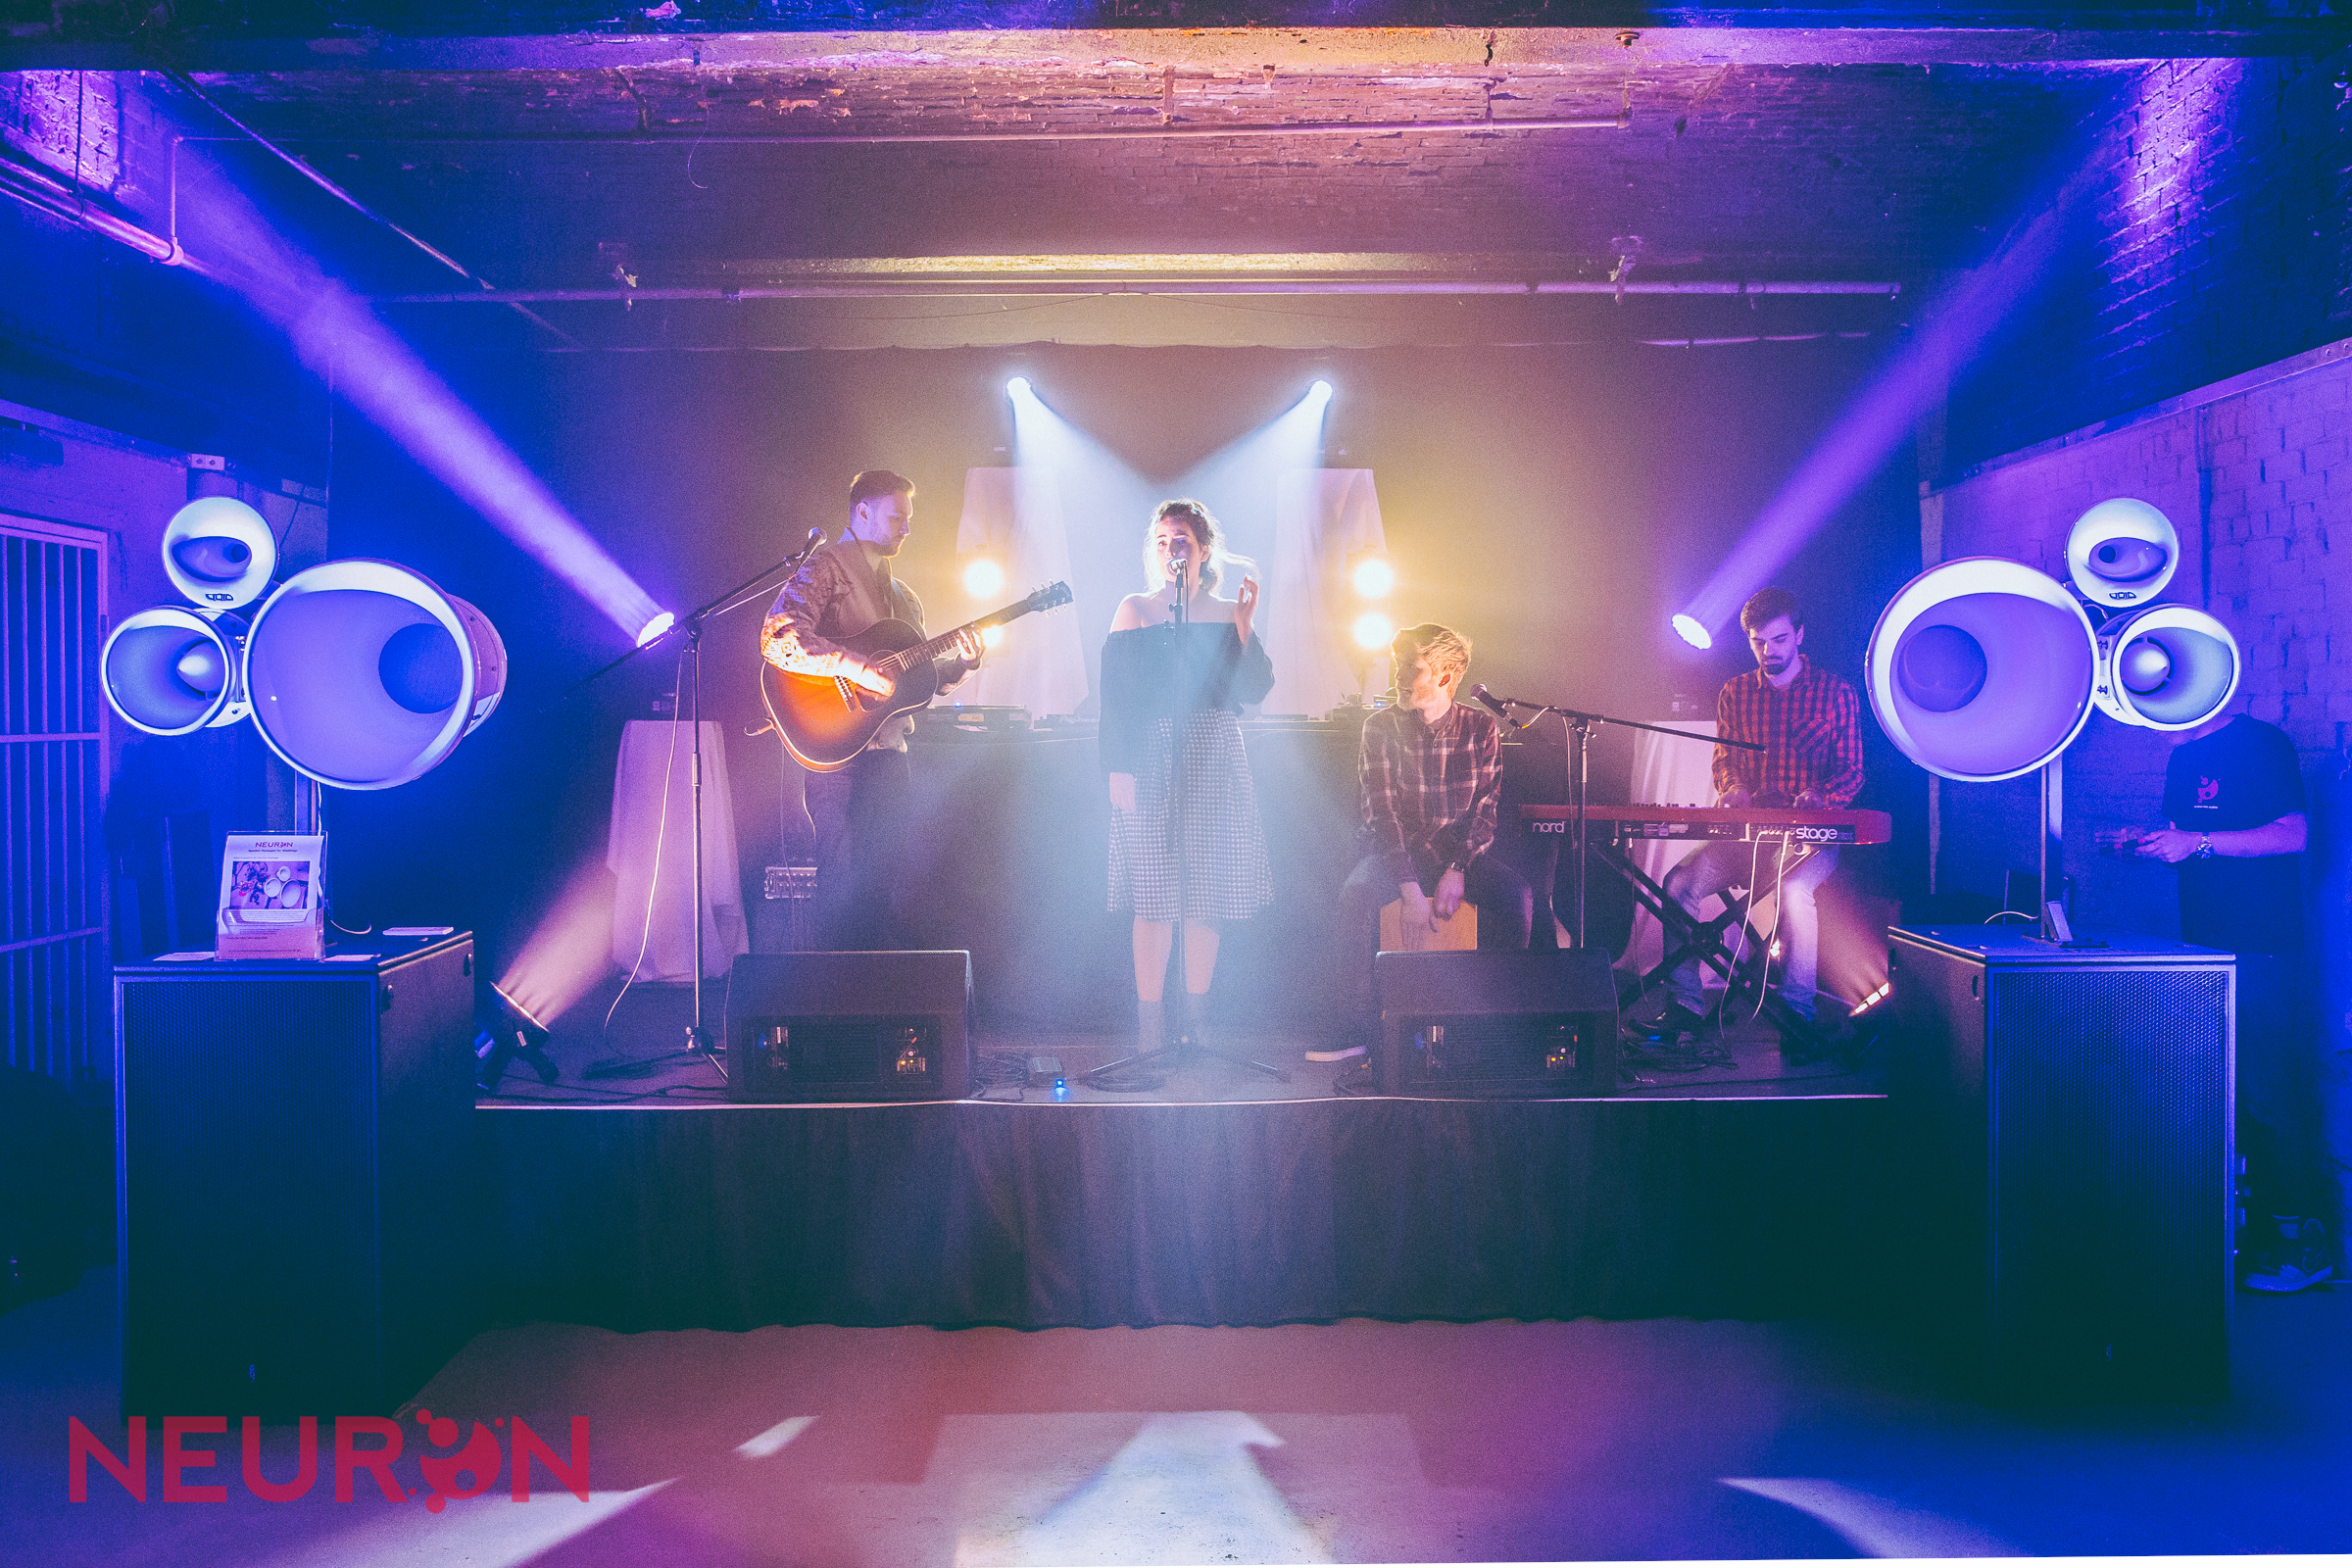 Band lit by Chauvet Rogue spots and wash effects